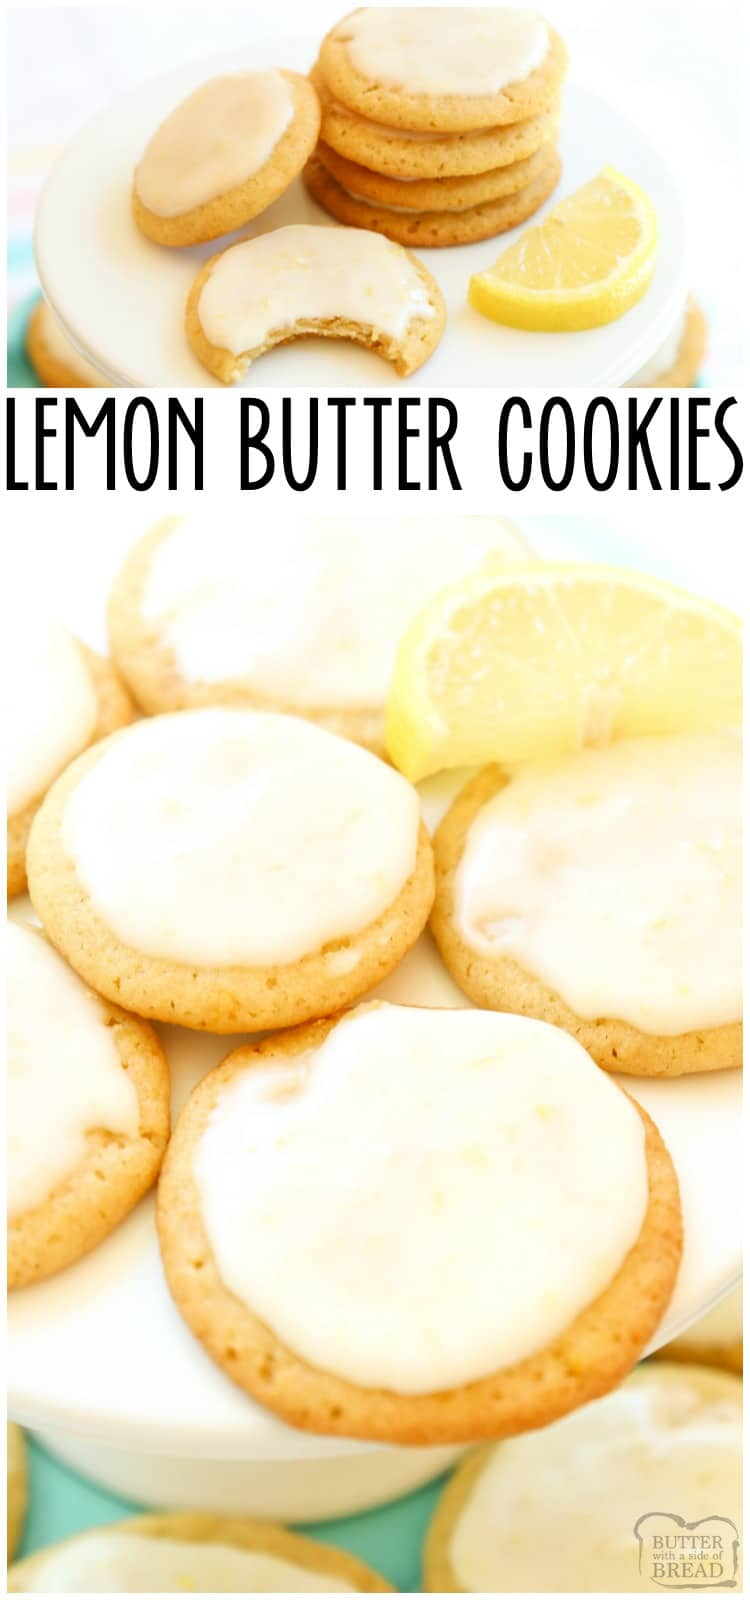 Lemon Butter Cookiesis one of my favorite butter cookie recipesand lemon desserts! Every time I make them I'm surprised at just how GOOD theselemon cookiestaste. #lemon #cookies #lemonbuttercookies #buttercookies #lemondessert #withicing #recipefrom Butter With a Side a Bread